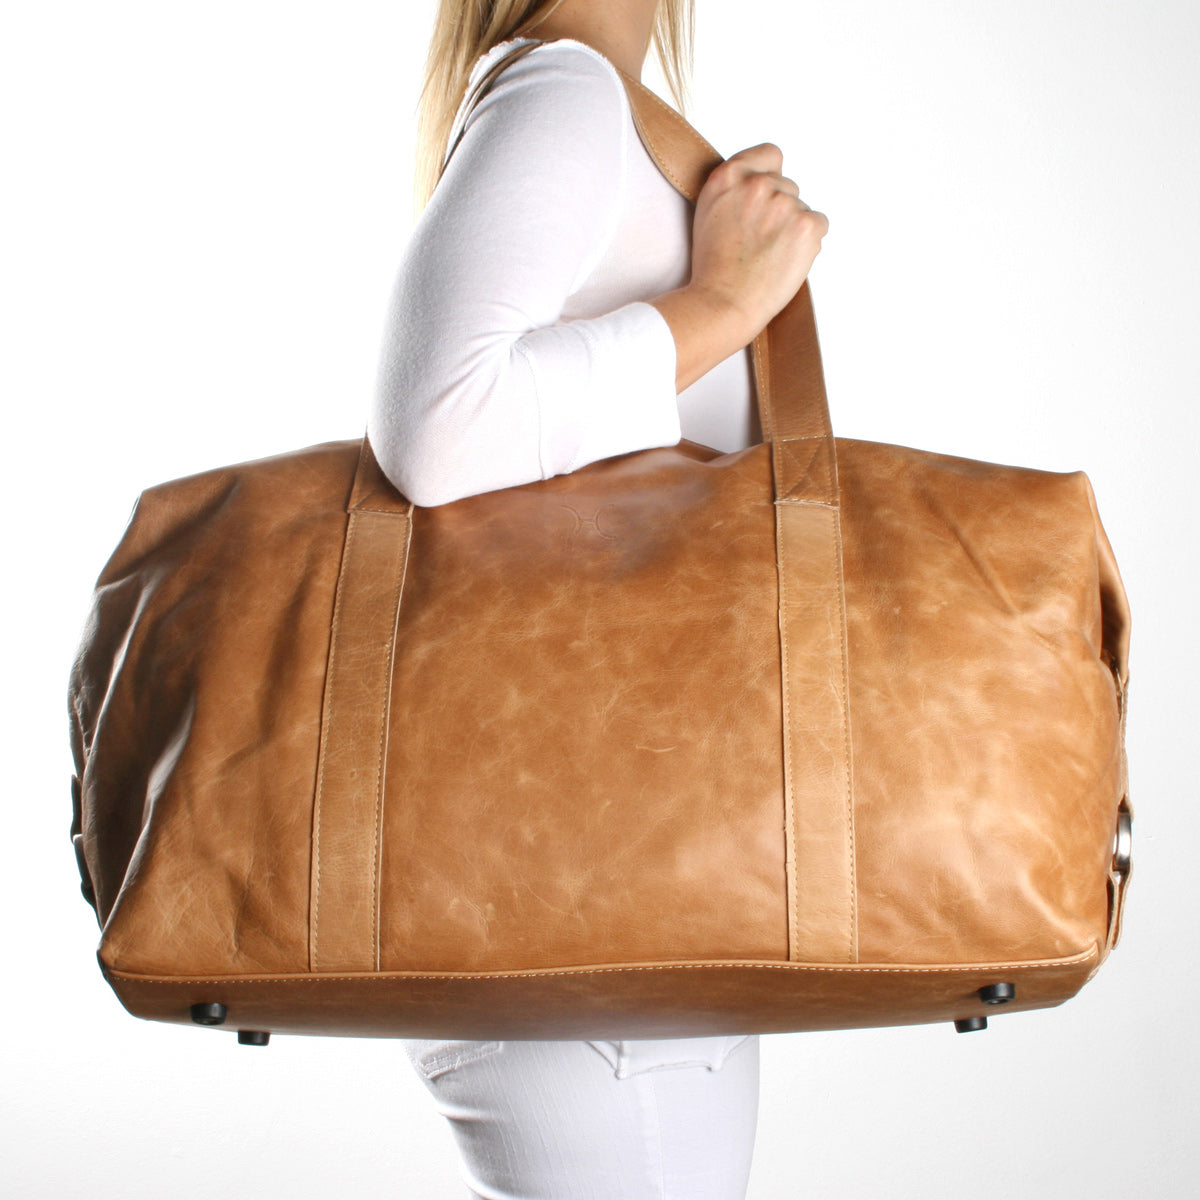 Thandana Duffel Bag - Brown - Zufrique Boutique